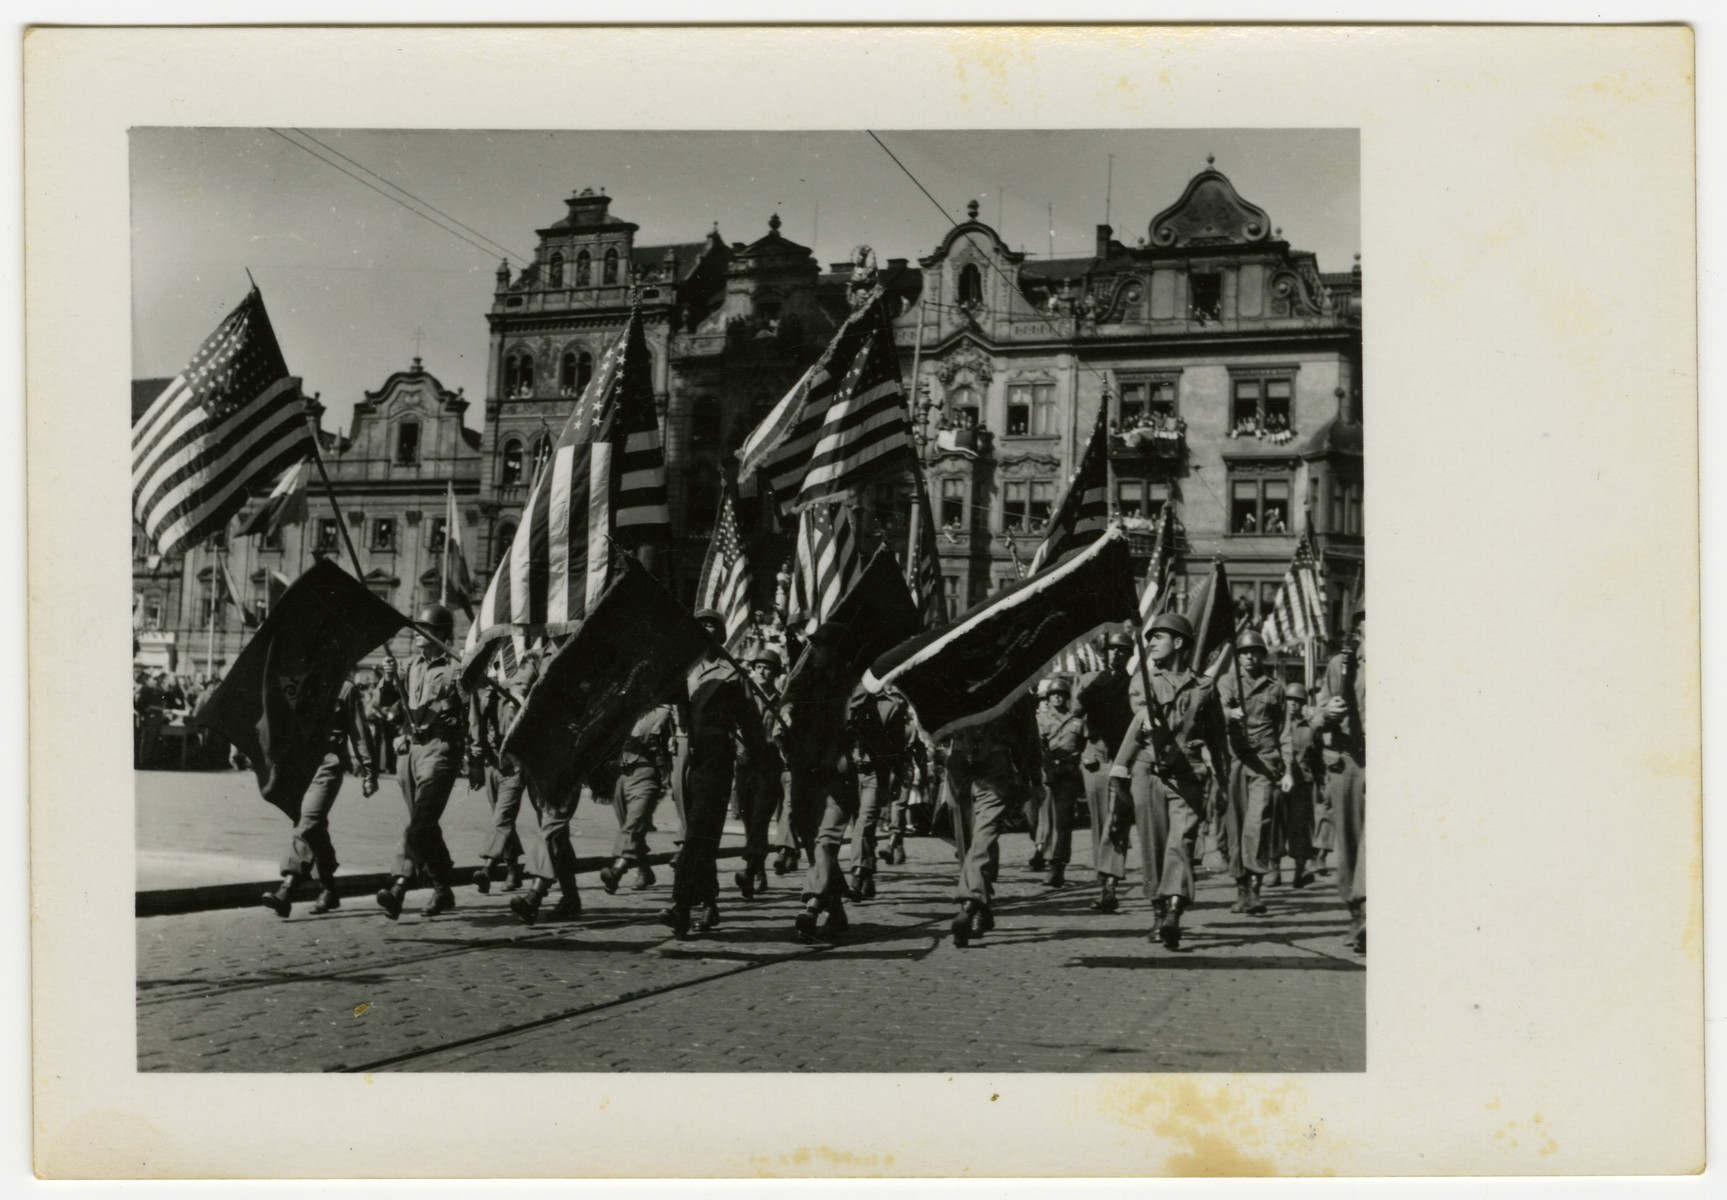 American soldiers march through Pilsen, Czechoslovakia on its liberation day.